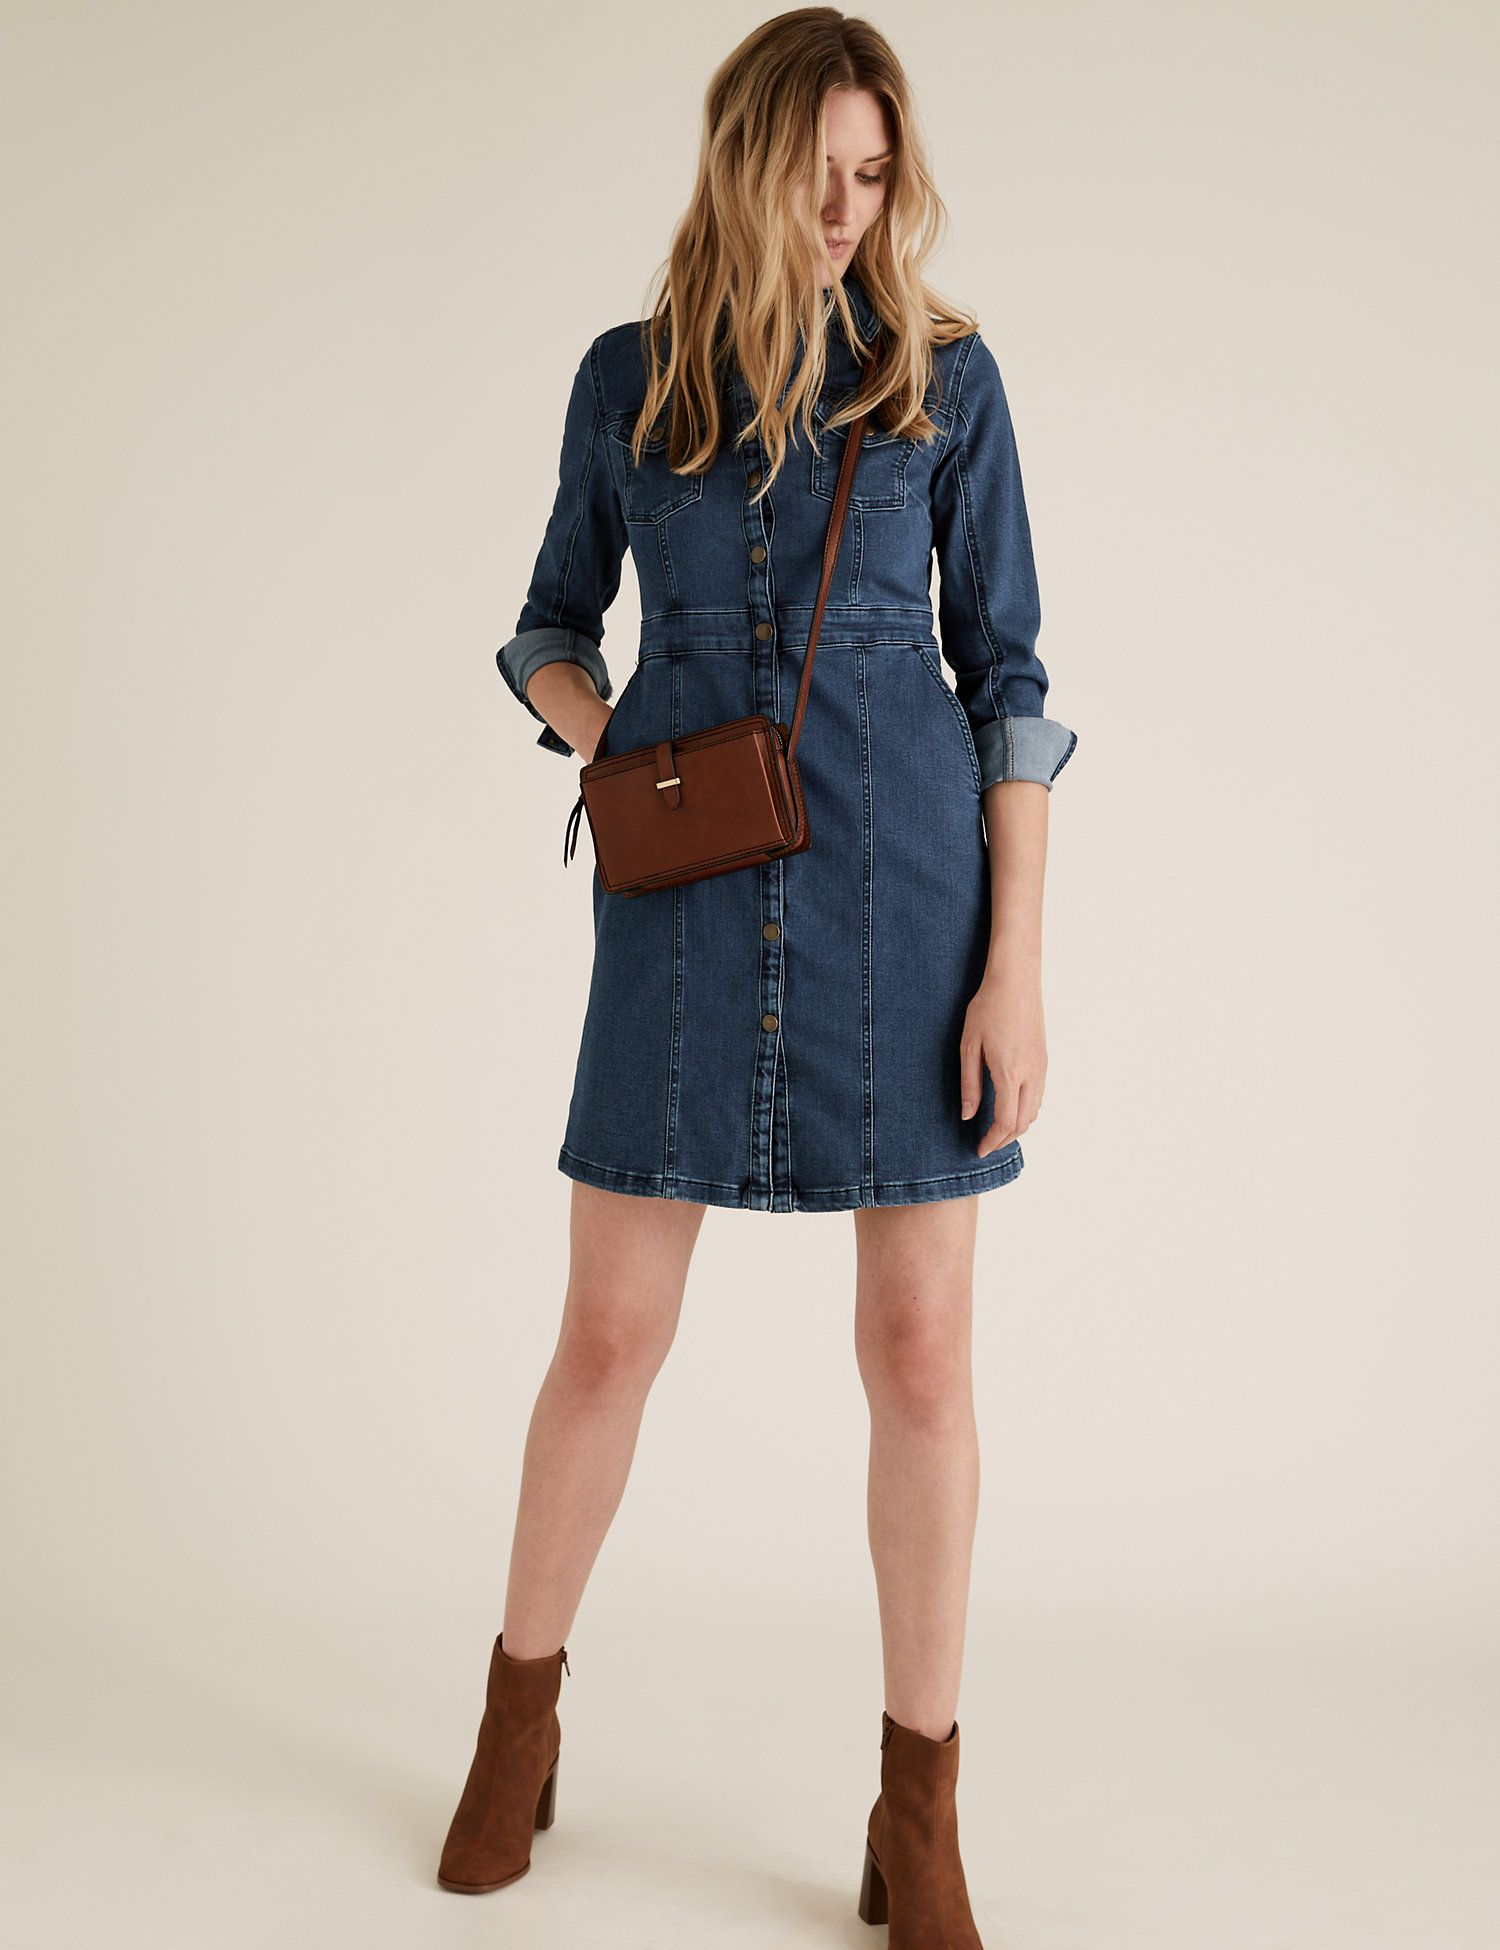 Last year's sell-out denim shirt dress is back at M&S